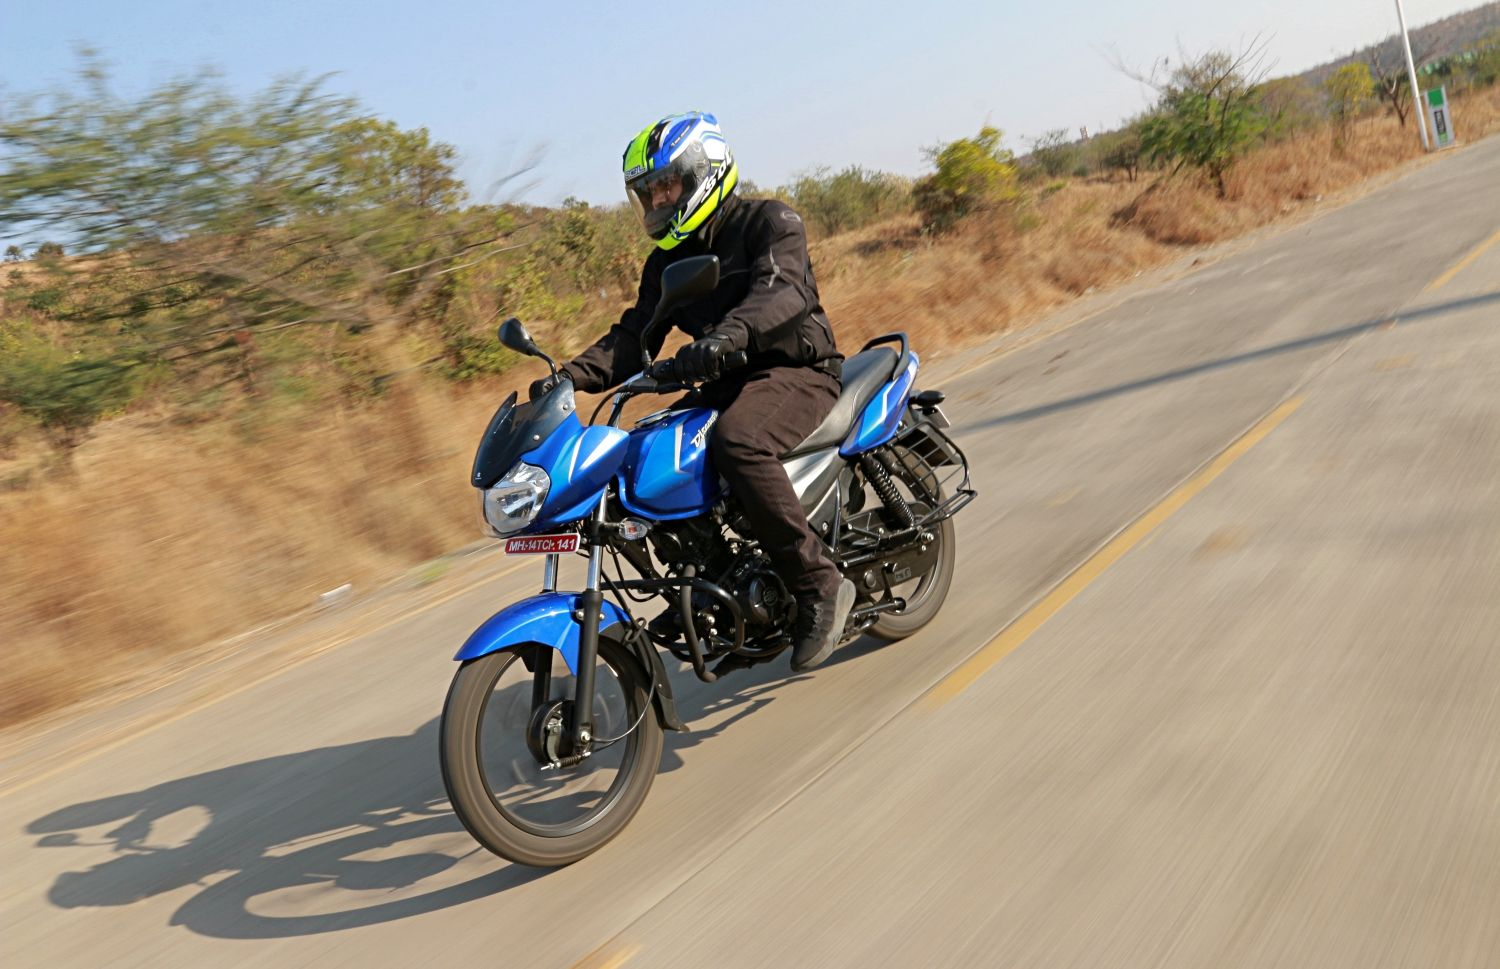 Bajaj Discover 110: First Ride Review